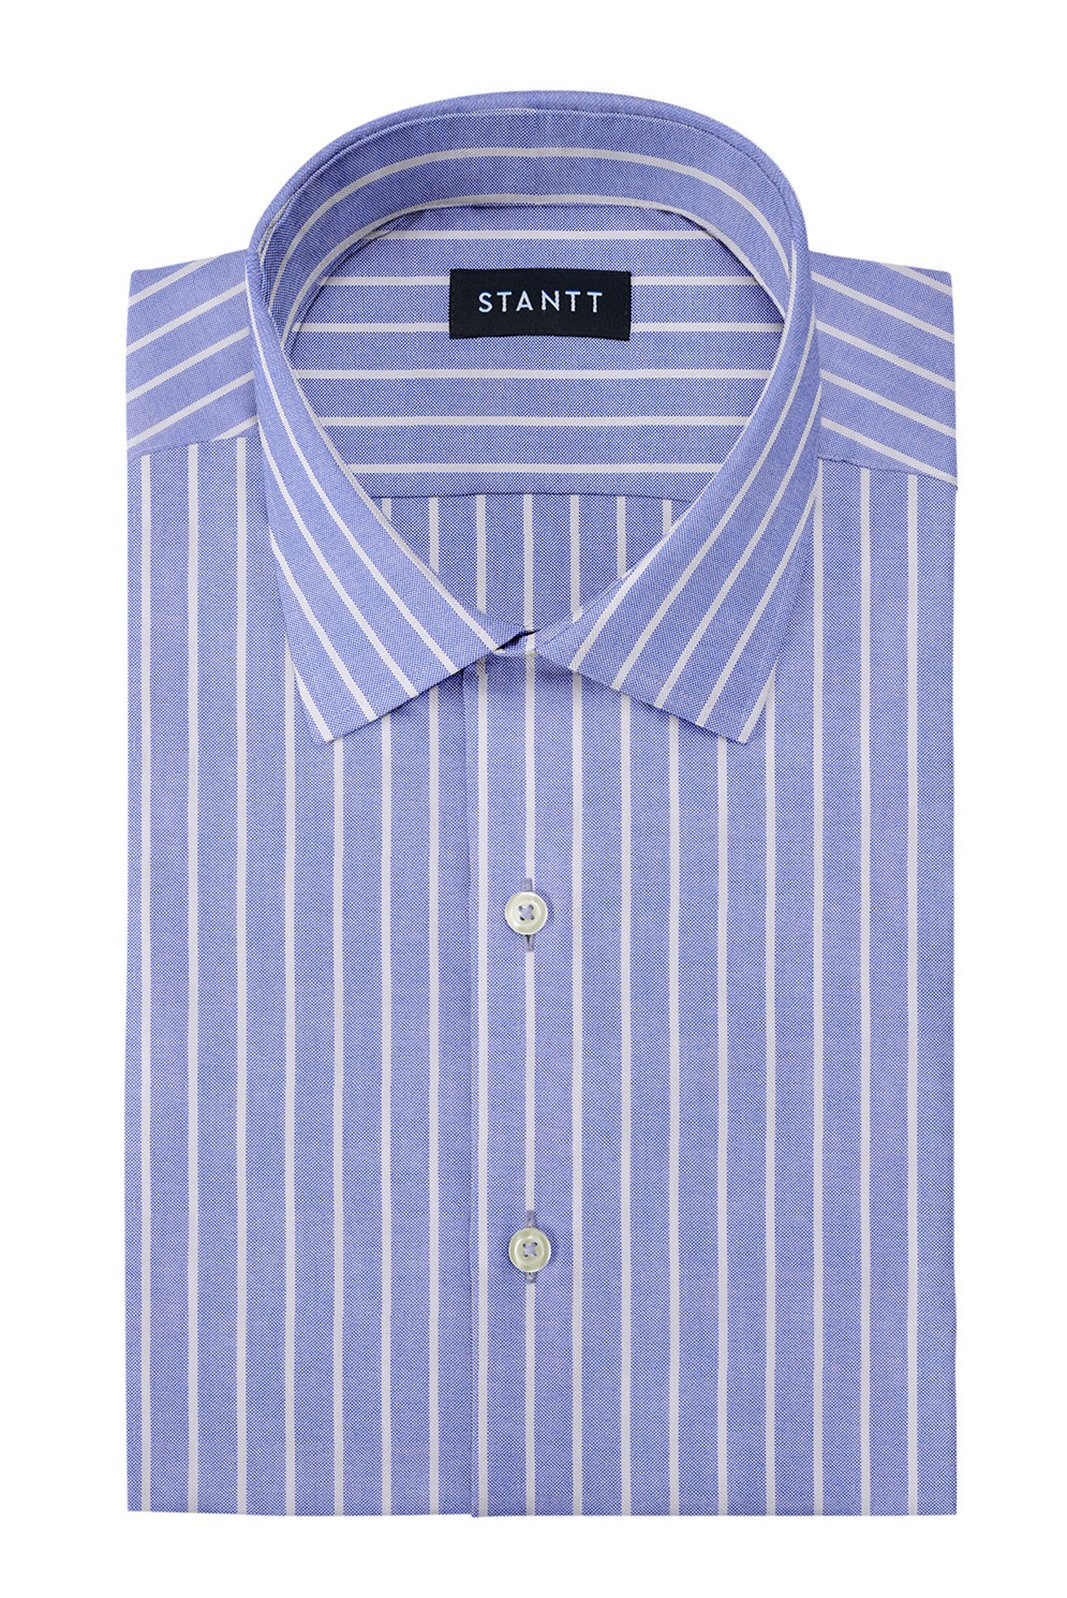 Powder Blue Reverse Stripe Oxford: Modified-Spread Collar, Barrel Cuff